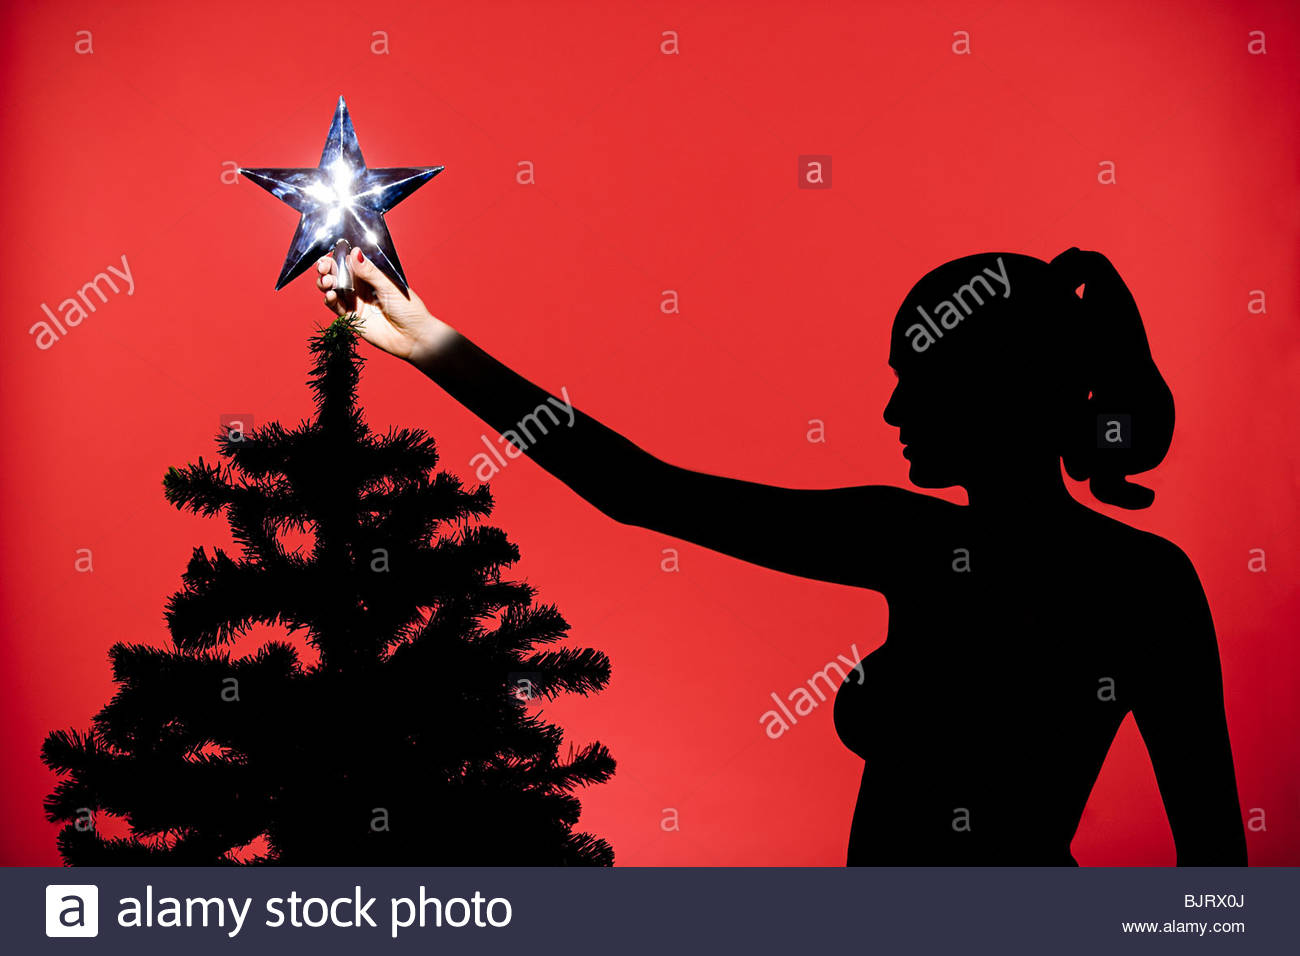 Woman putting star on christmas tree - Stock Image